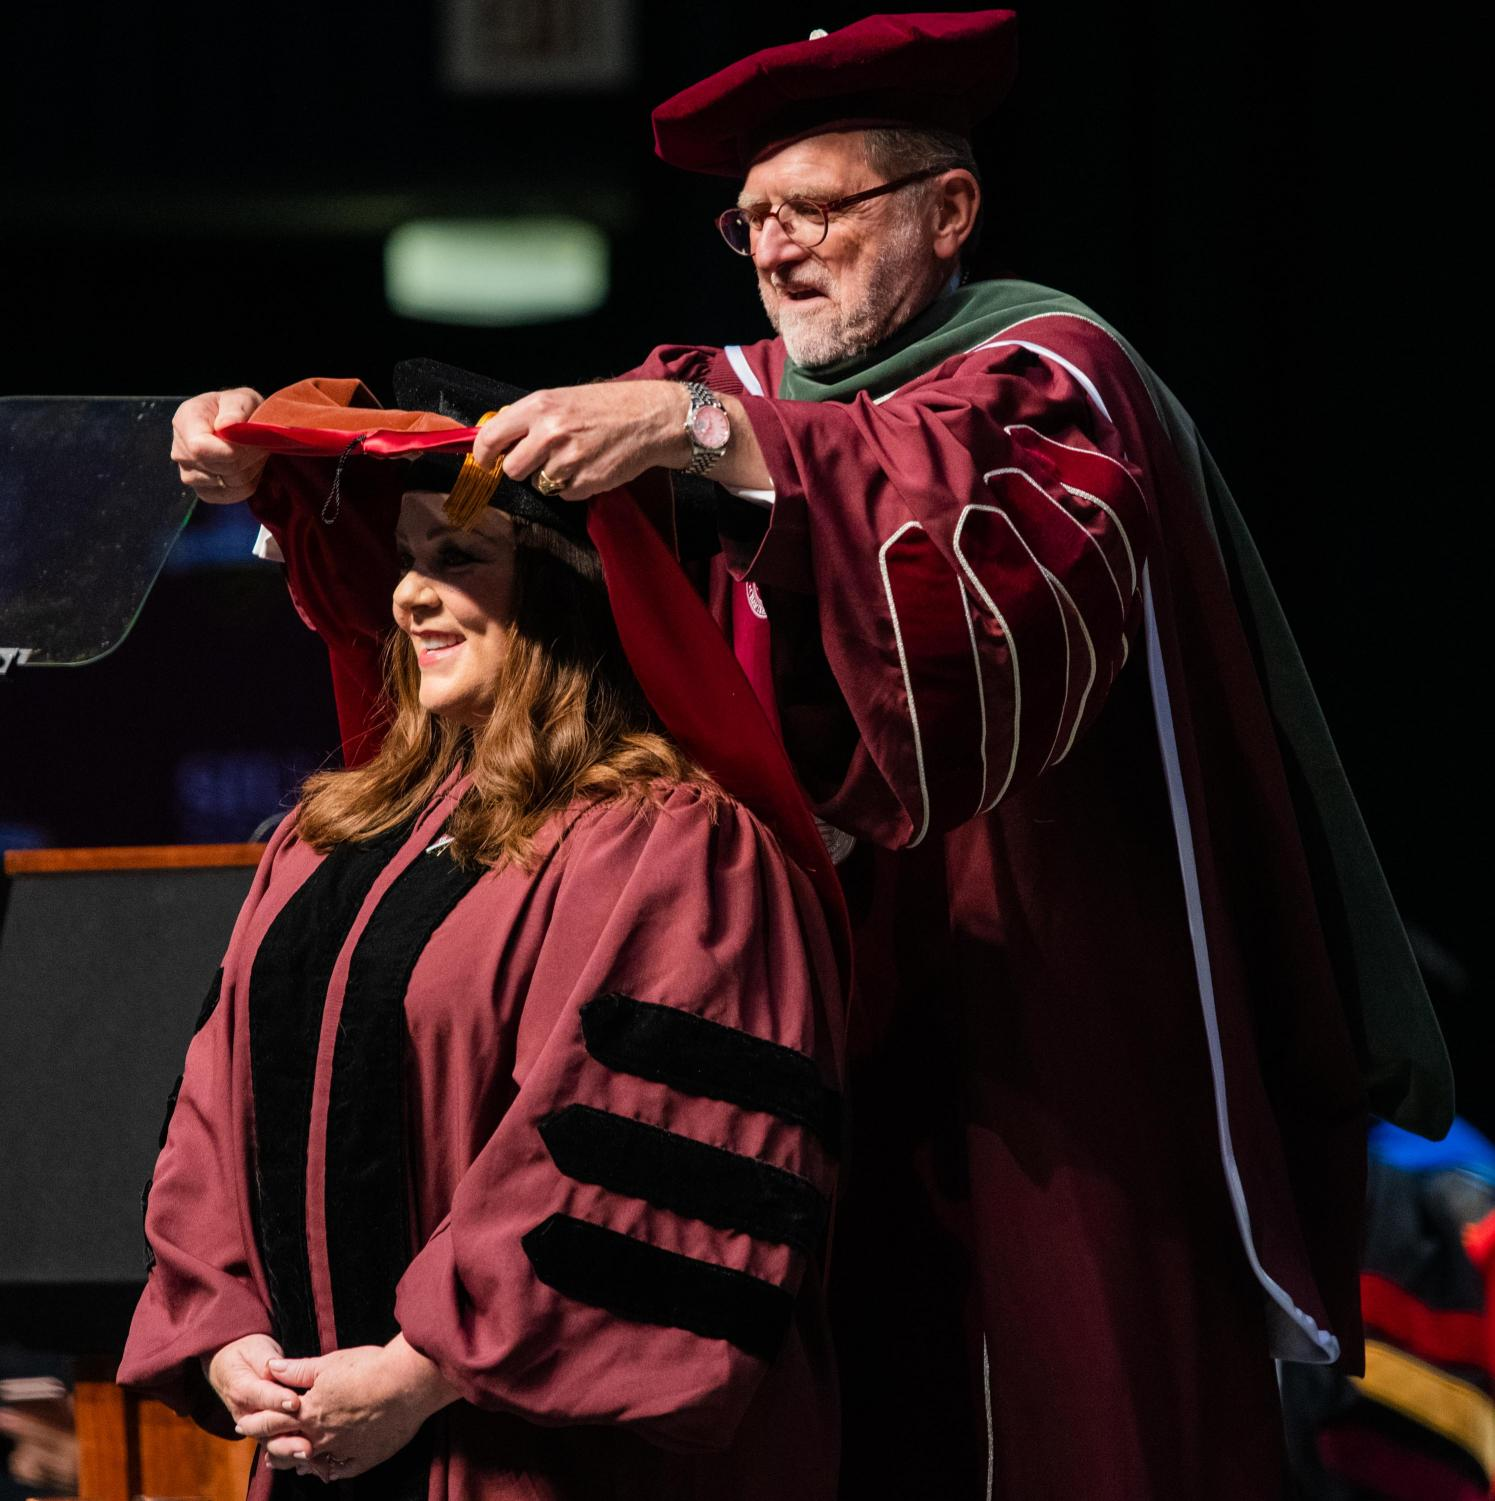 Academy+Award+nominee%2C+Emmy+Award-winning+actress+Melissa+McCarthy+receives+an+honorary+doctorate+of+performing+arts+degree+from+Interim+Chancellor+John+Dunn%0Aon+Saturday%2C+May+11%2C+2019+during+the+2019+commencement+inside+the+SIU+Arena.+